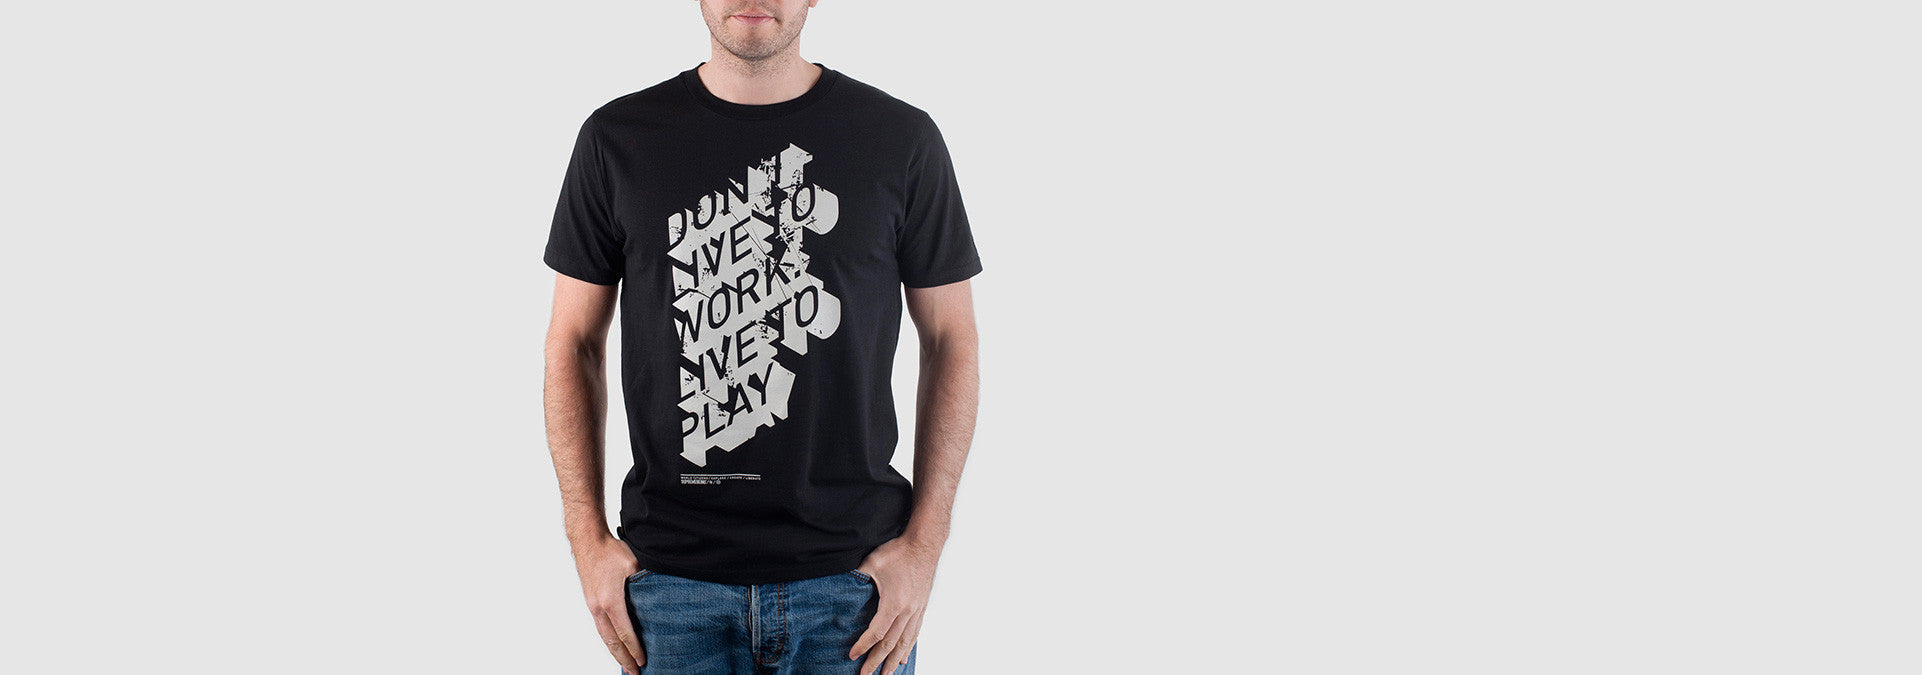 Don't Work T-Shirt Black